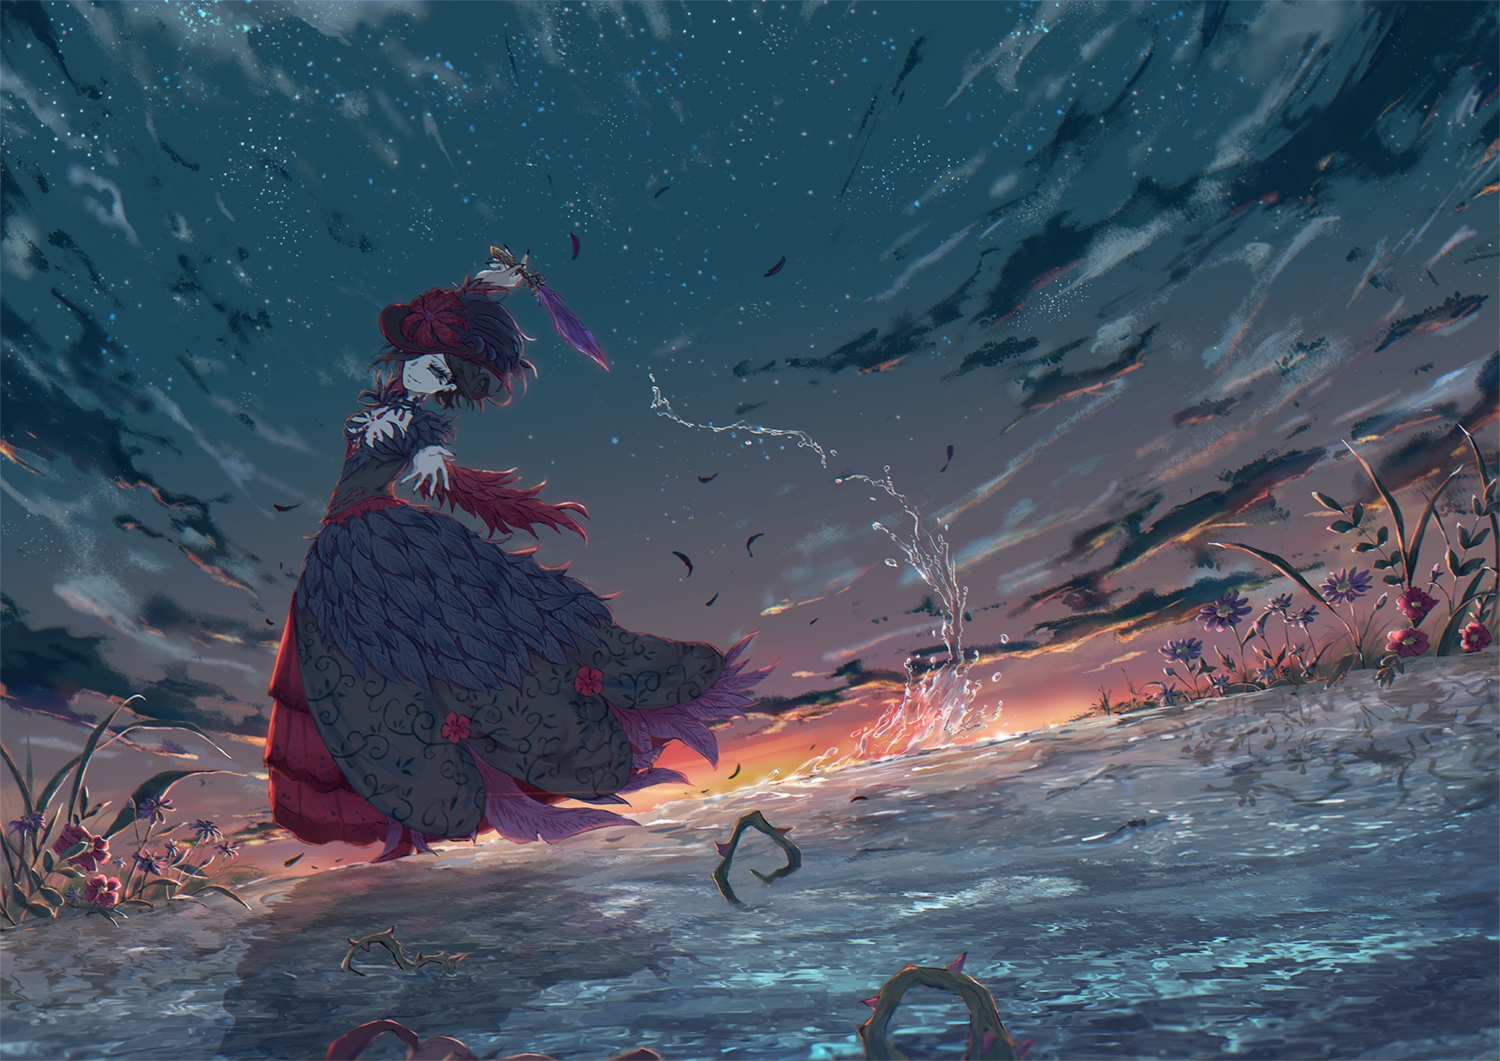 black_eyes black_hair breasts cleavage clouds dress feathers flowers identity_v koppan mary_(identity_v) short_hair sky stars sunset water